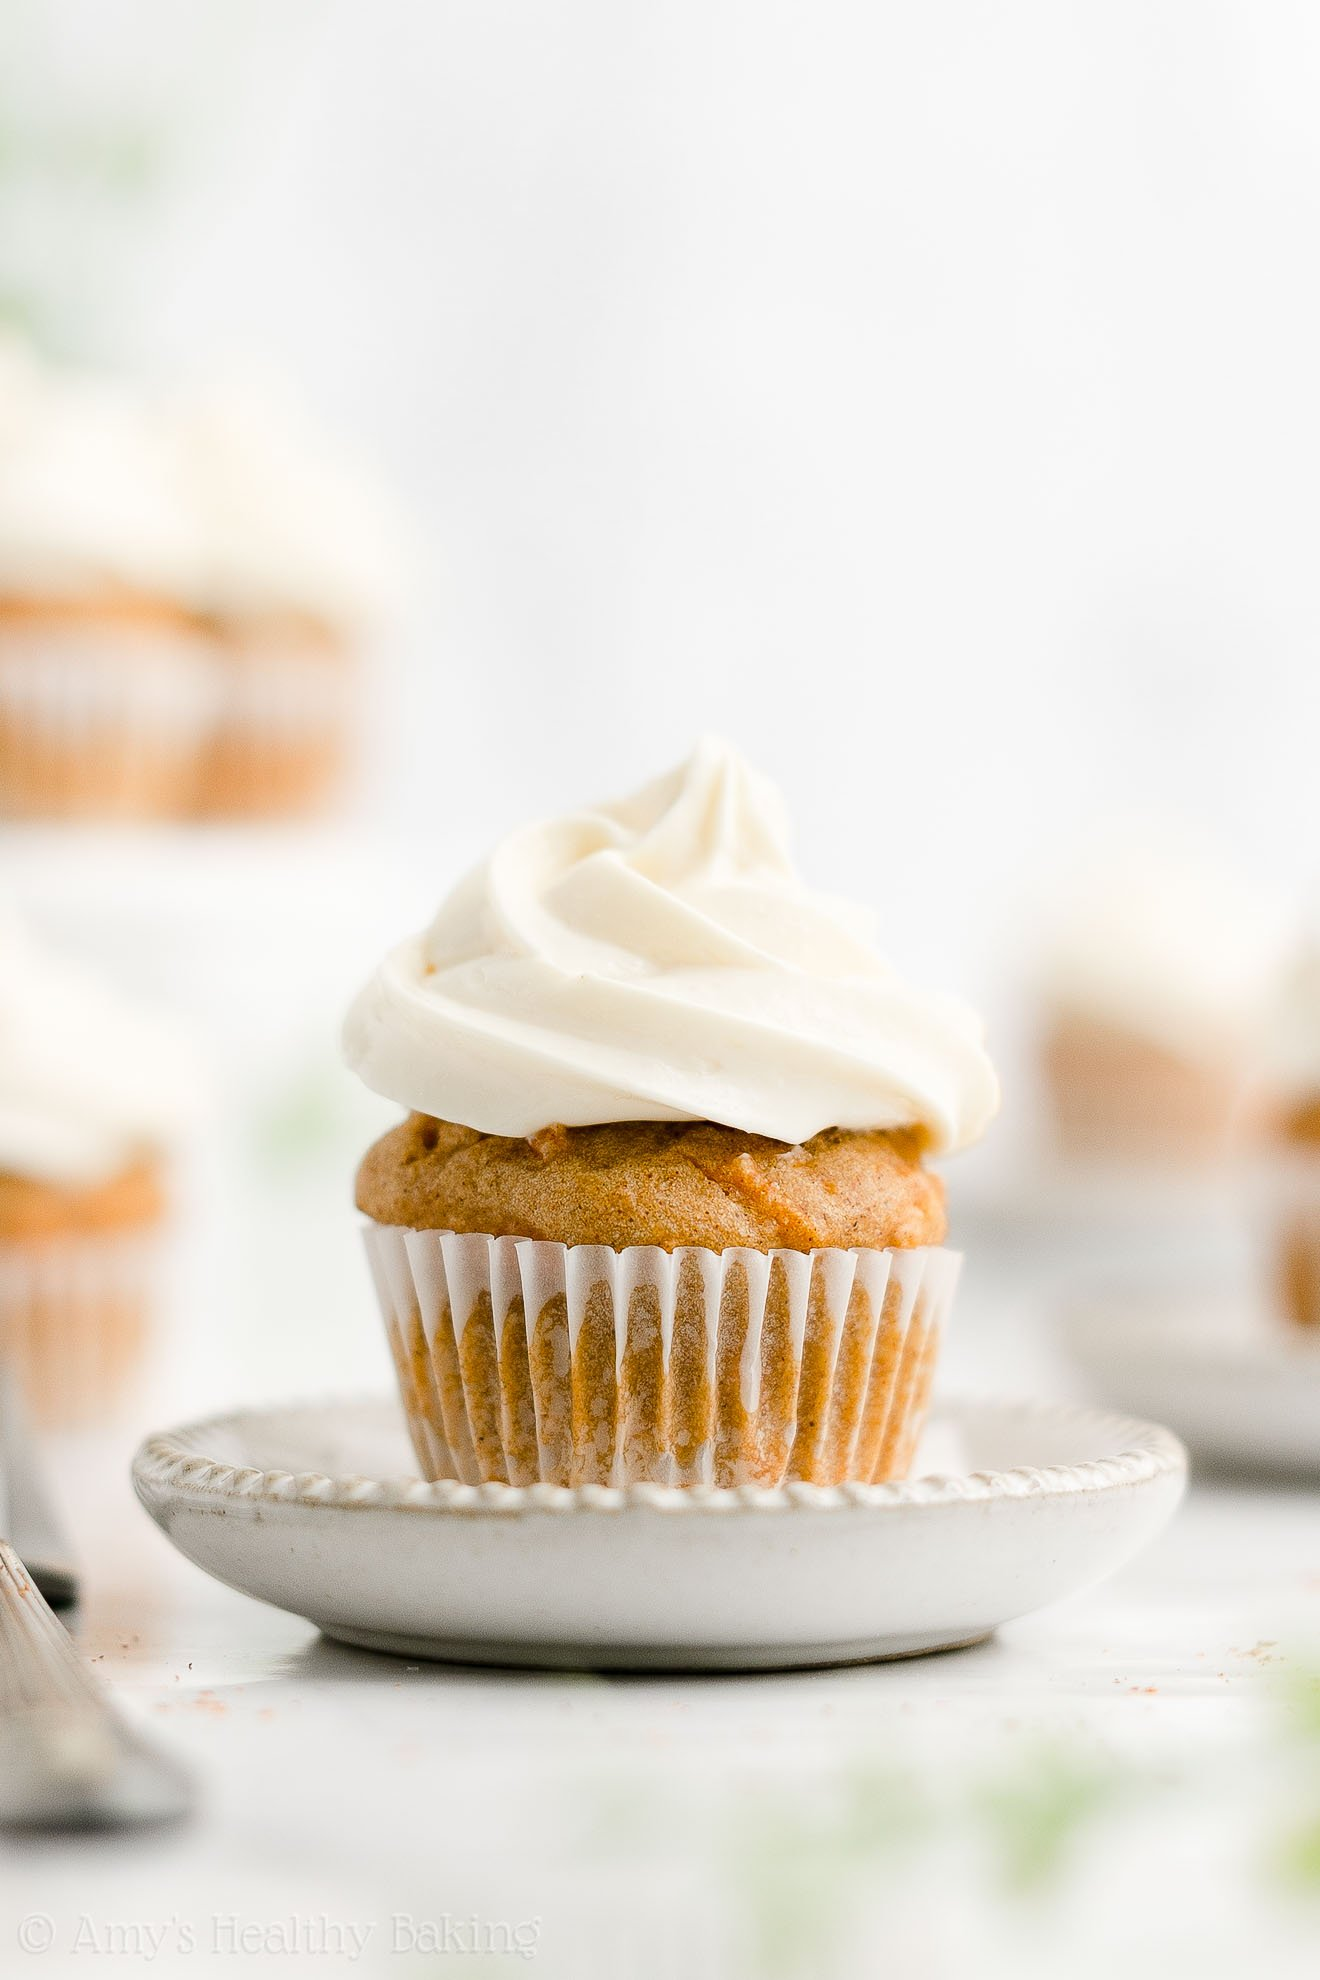 ULTIMATE Healthy Mini Carrot Cake Cupcakes with Cream Cheese Frosting